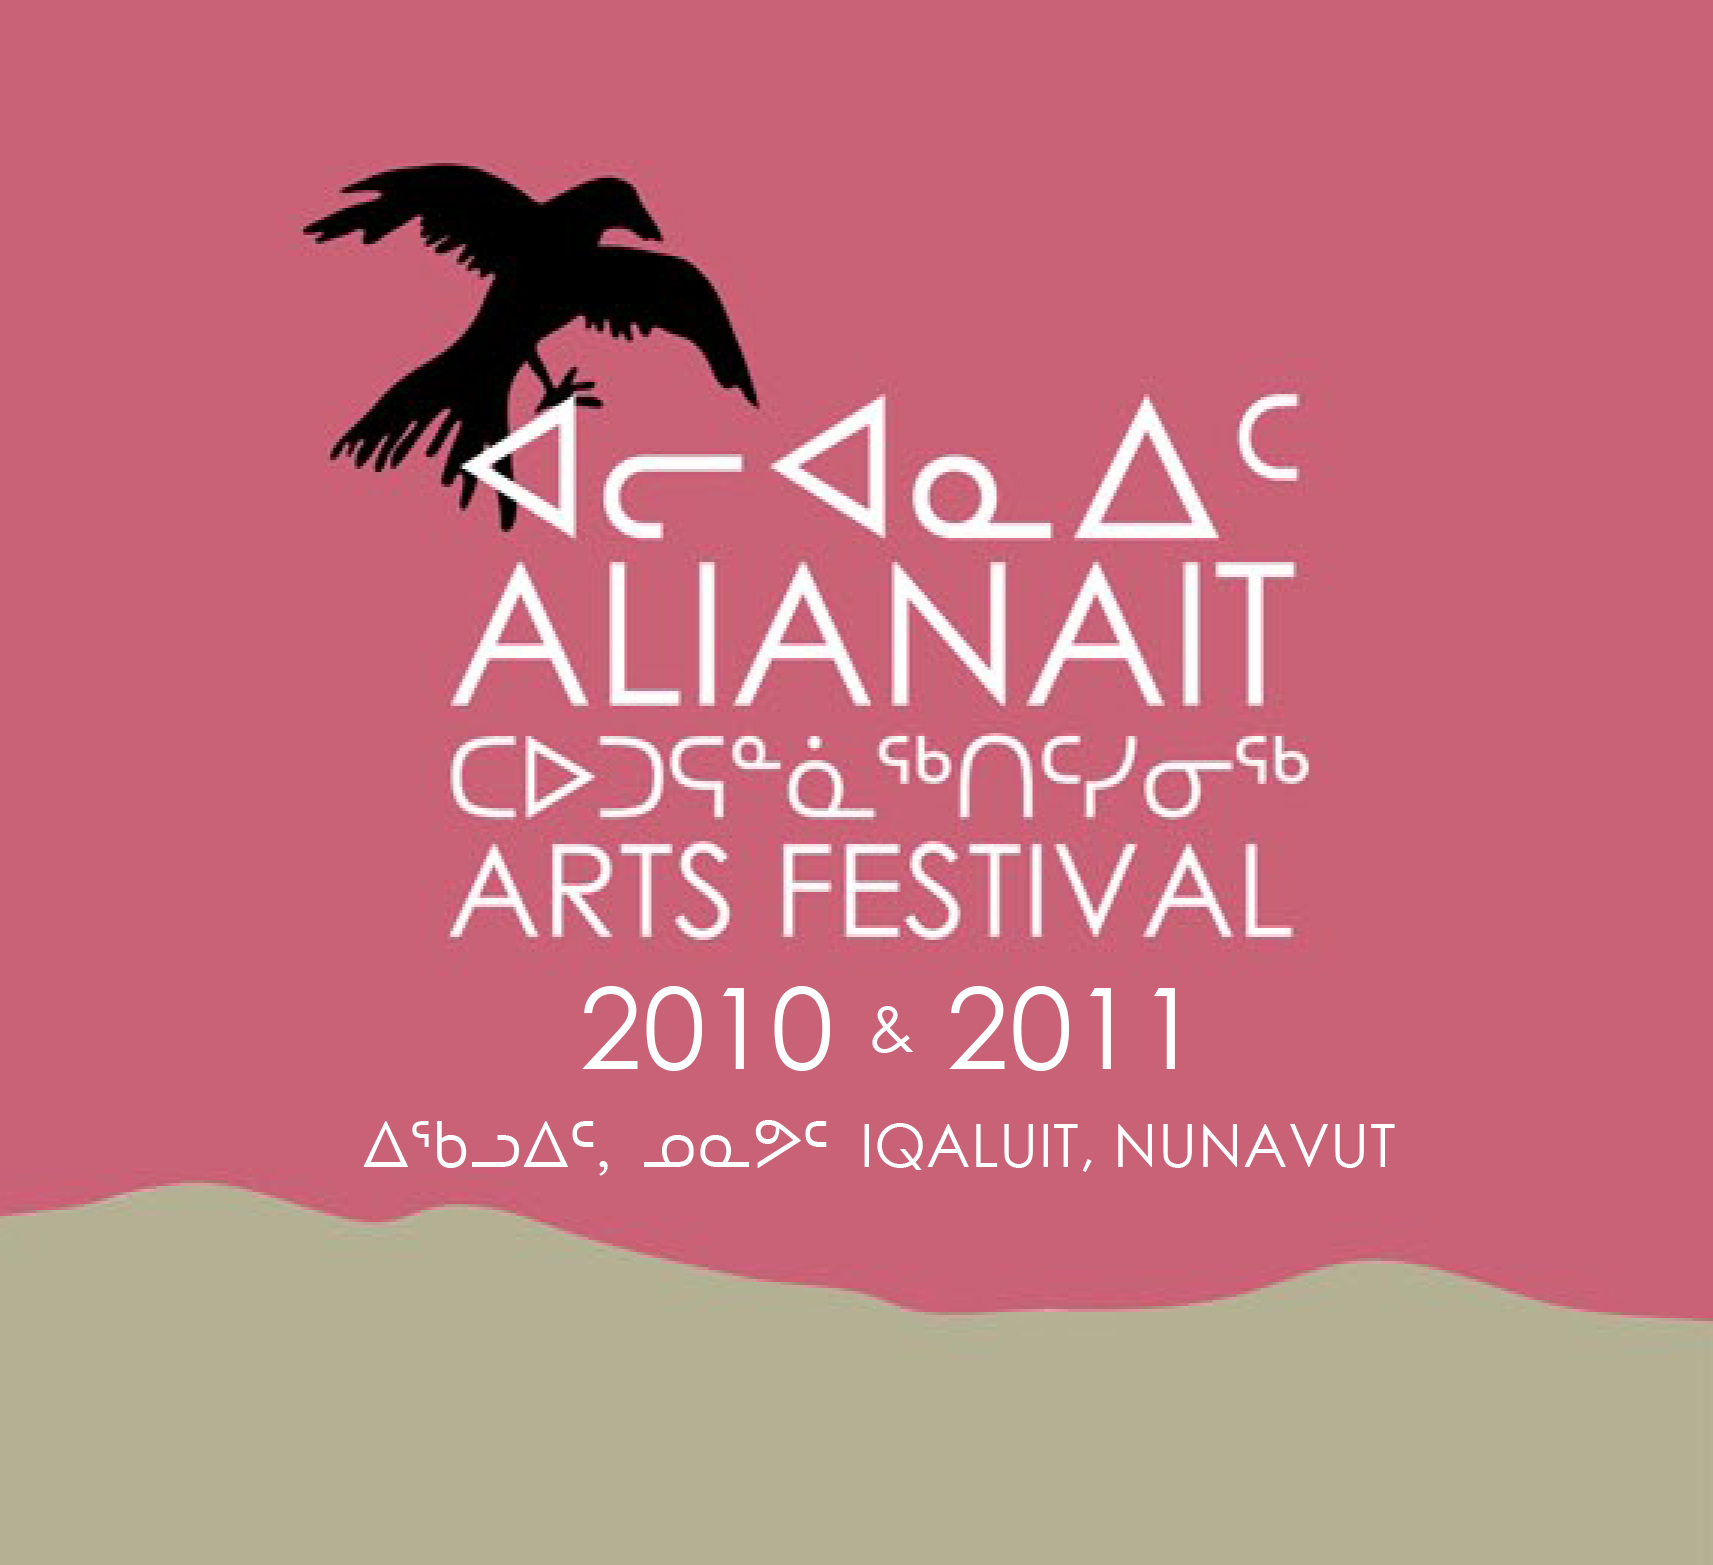 Alianait-2010-2011-Cover_final.png